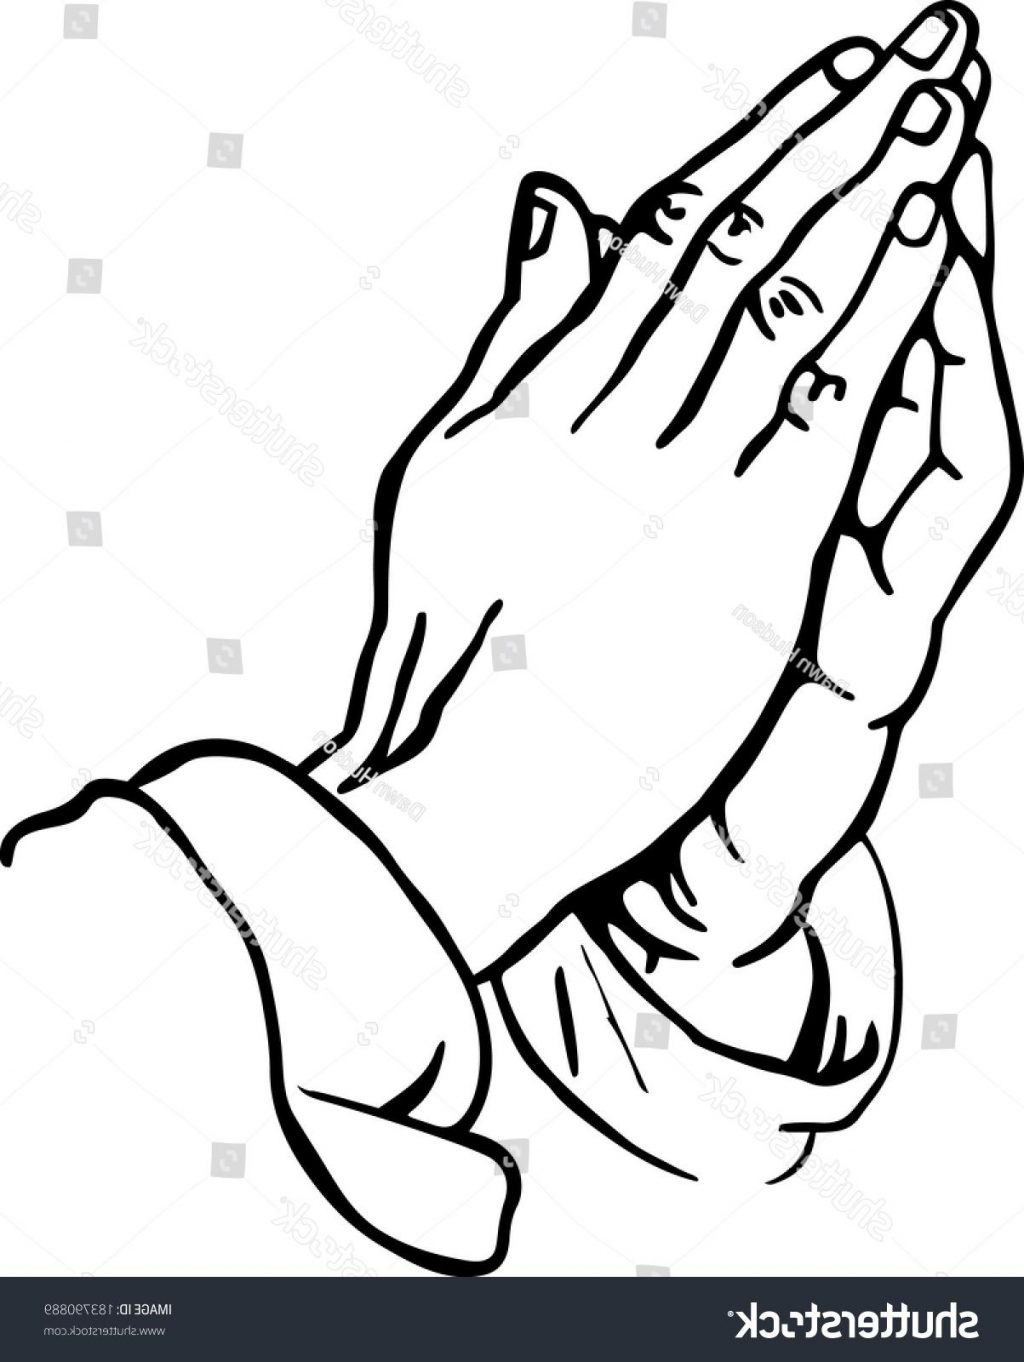 1024x1362 Unique Stock Vector Line Drawing Of Praying Hands Design